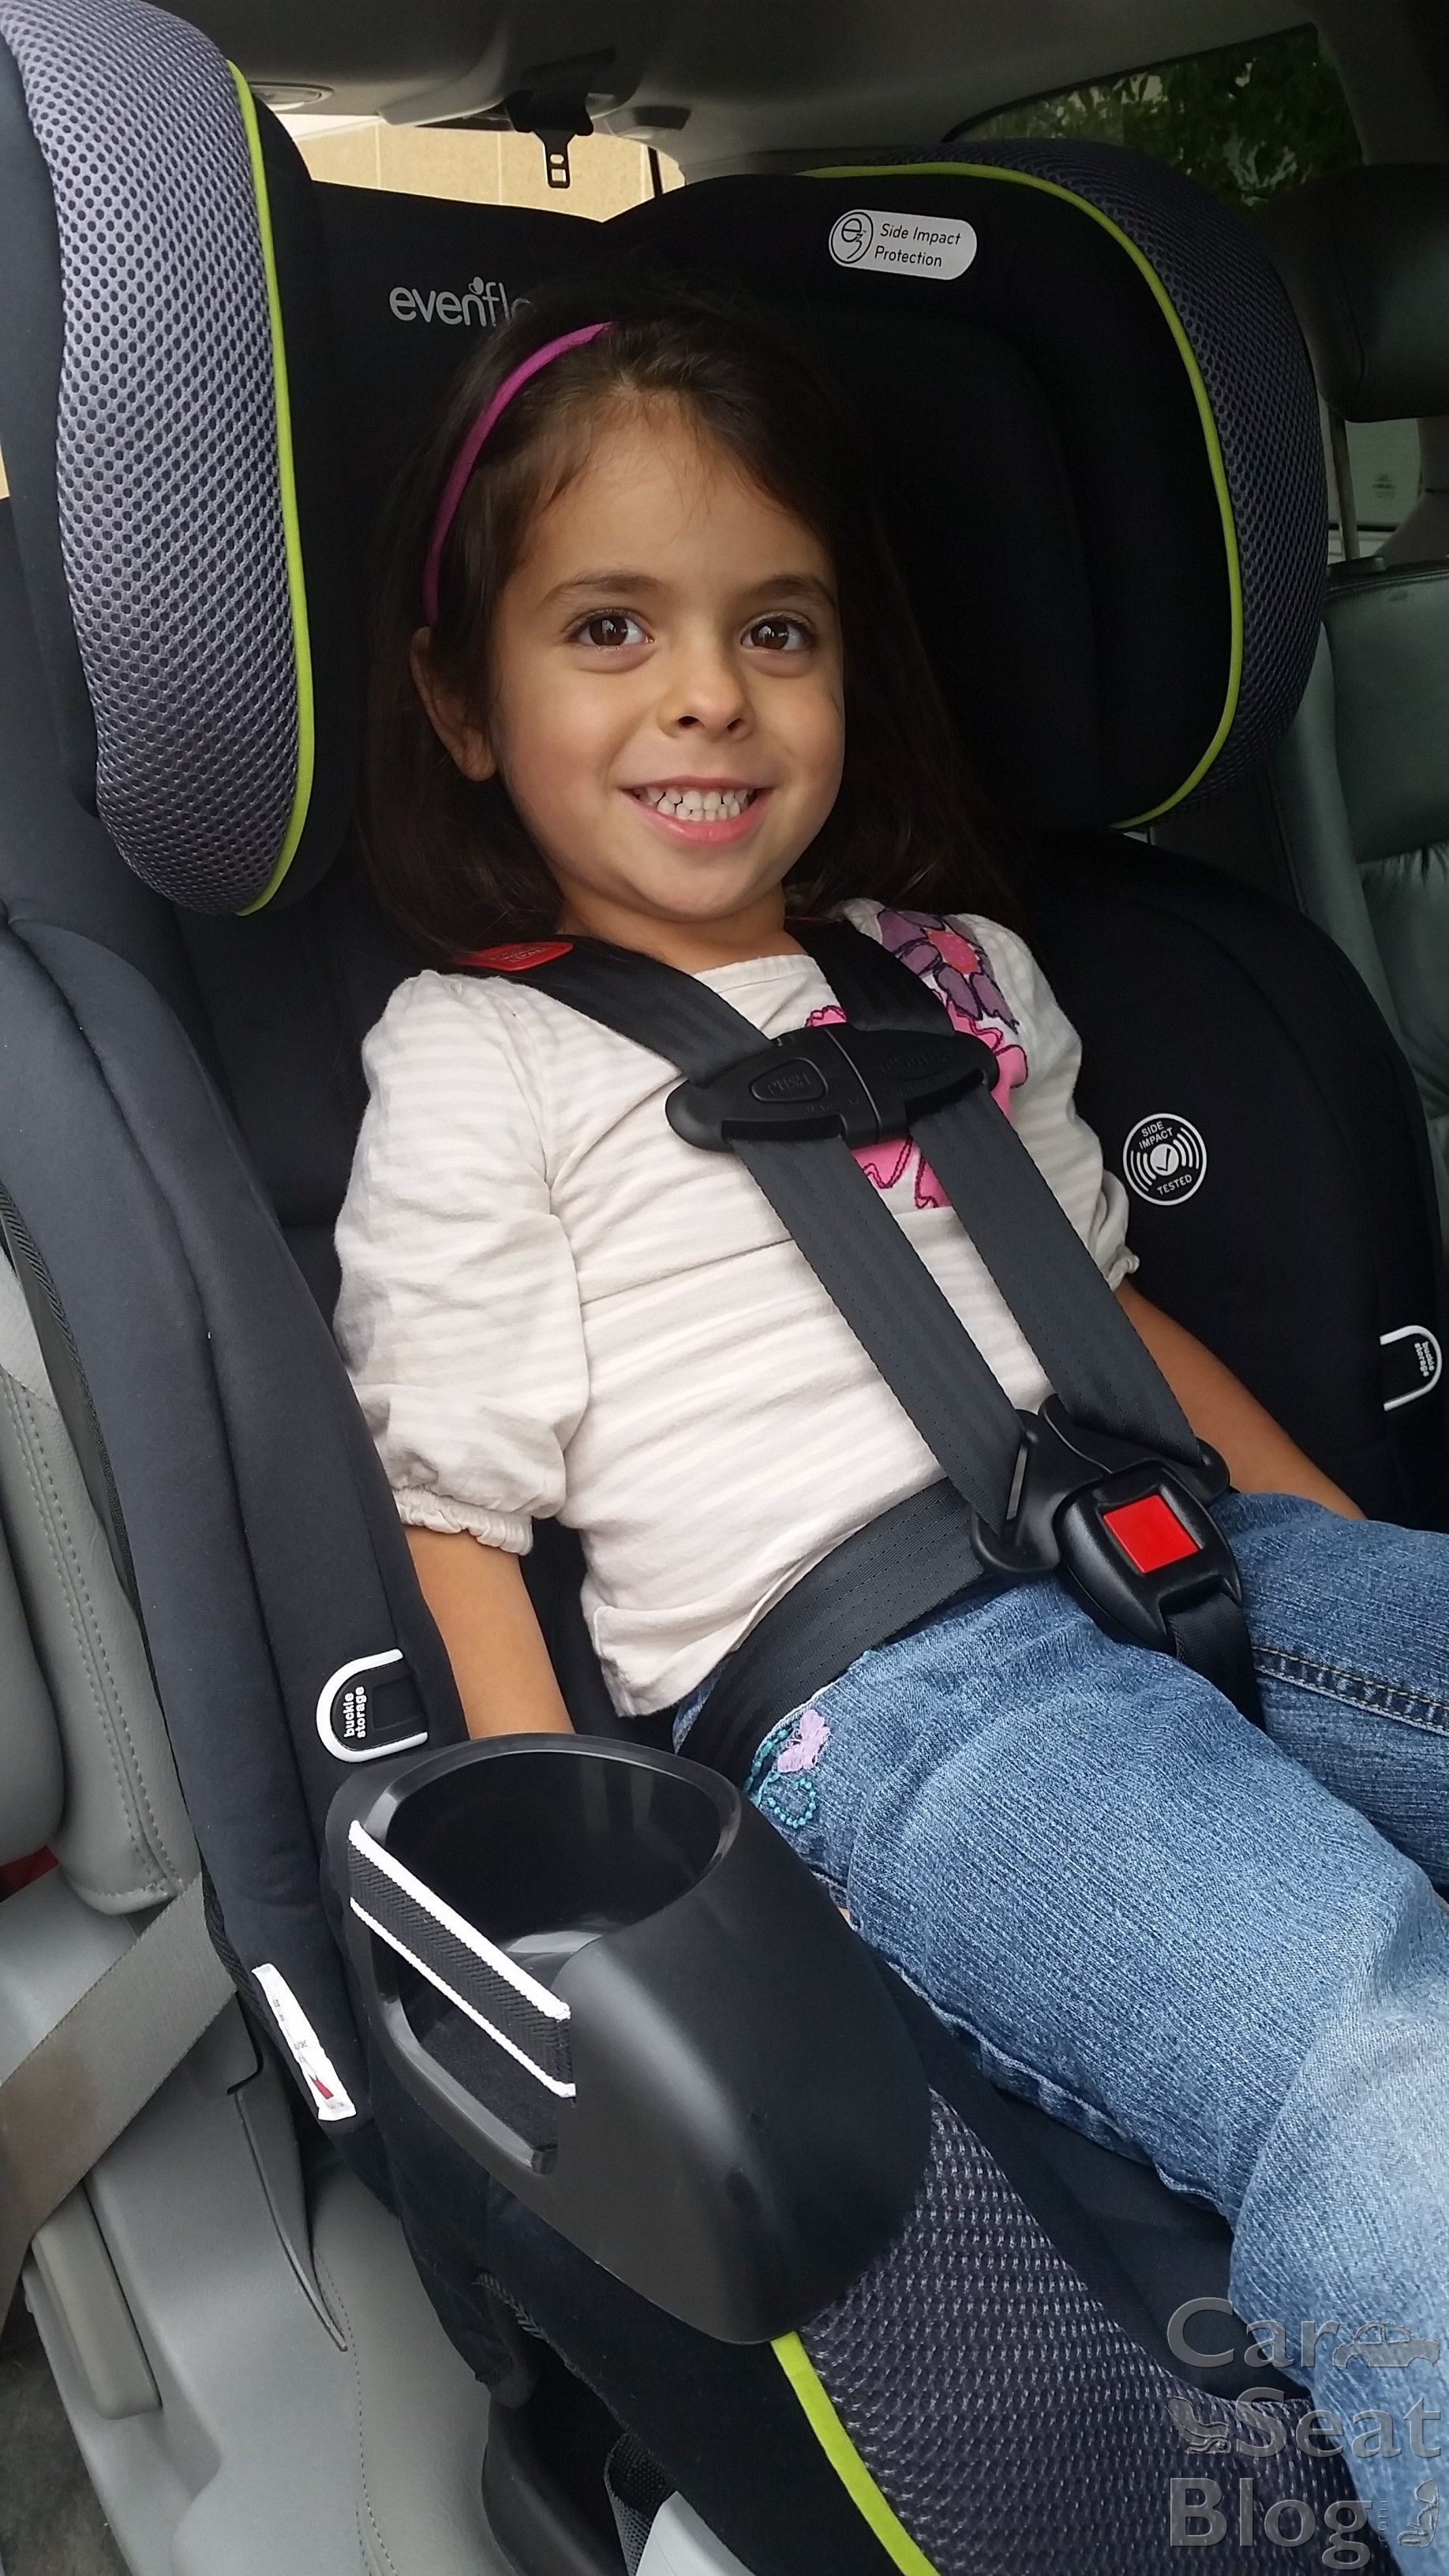 Parts for car seats likewise graco replacement parts for car - Big T Androgenic Test Booster Reviews Steroid Forums Questions Visit The Most Visited Steroid Forum